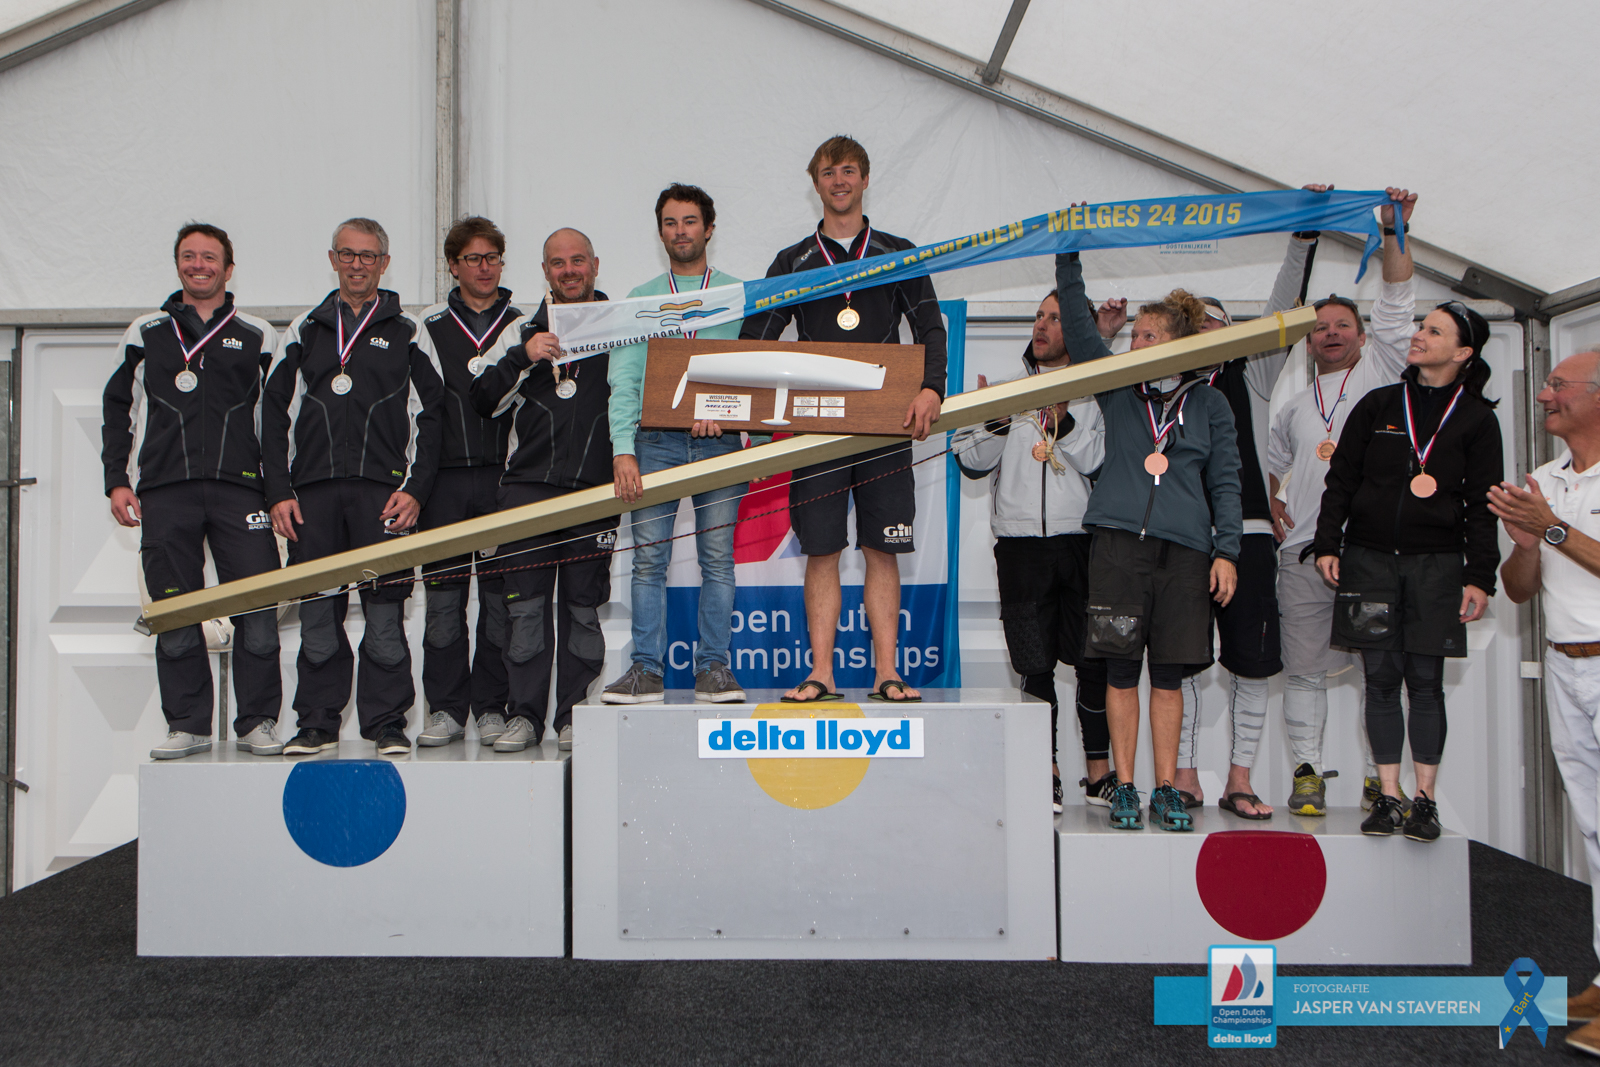 Melges 24 Top 3 teams of the Dutch Open Championships - photo Jasper van Stavere